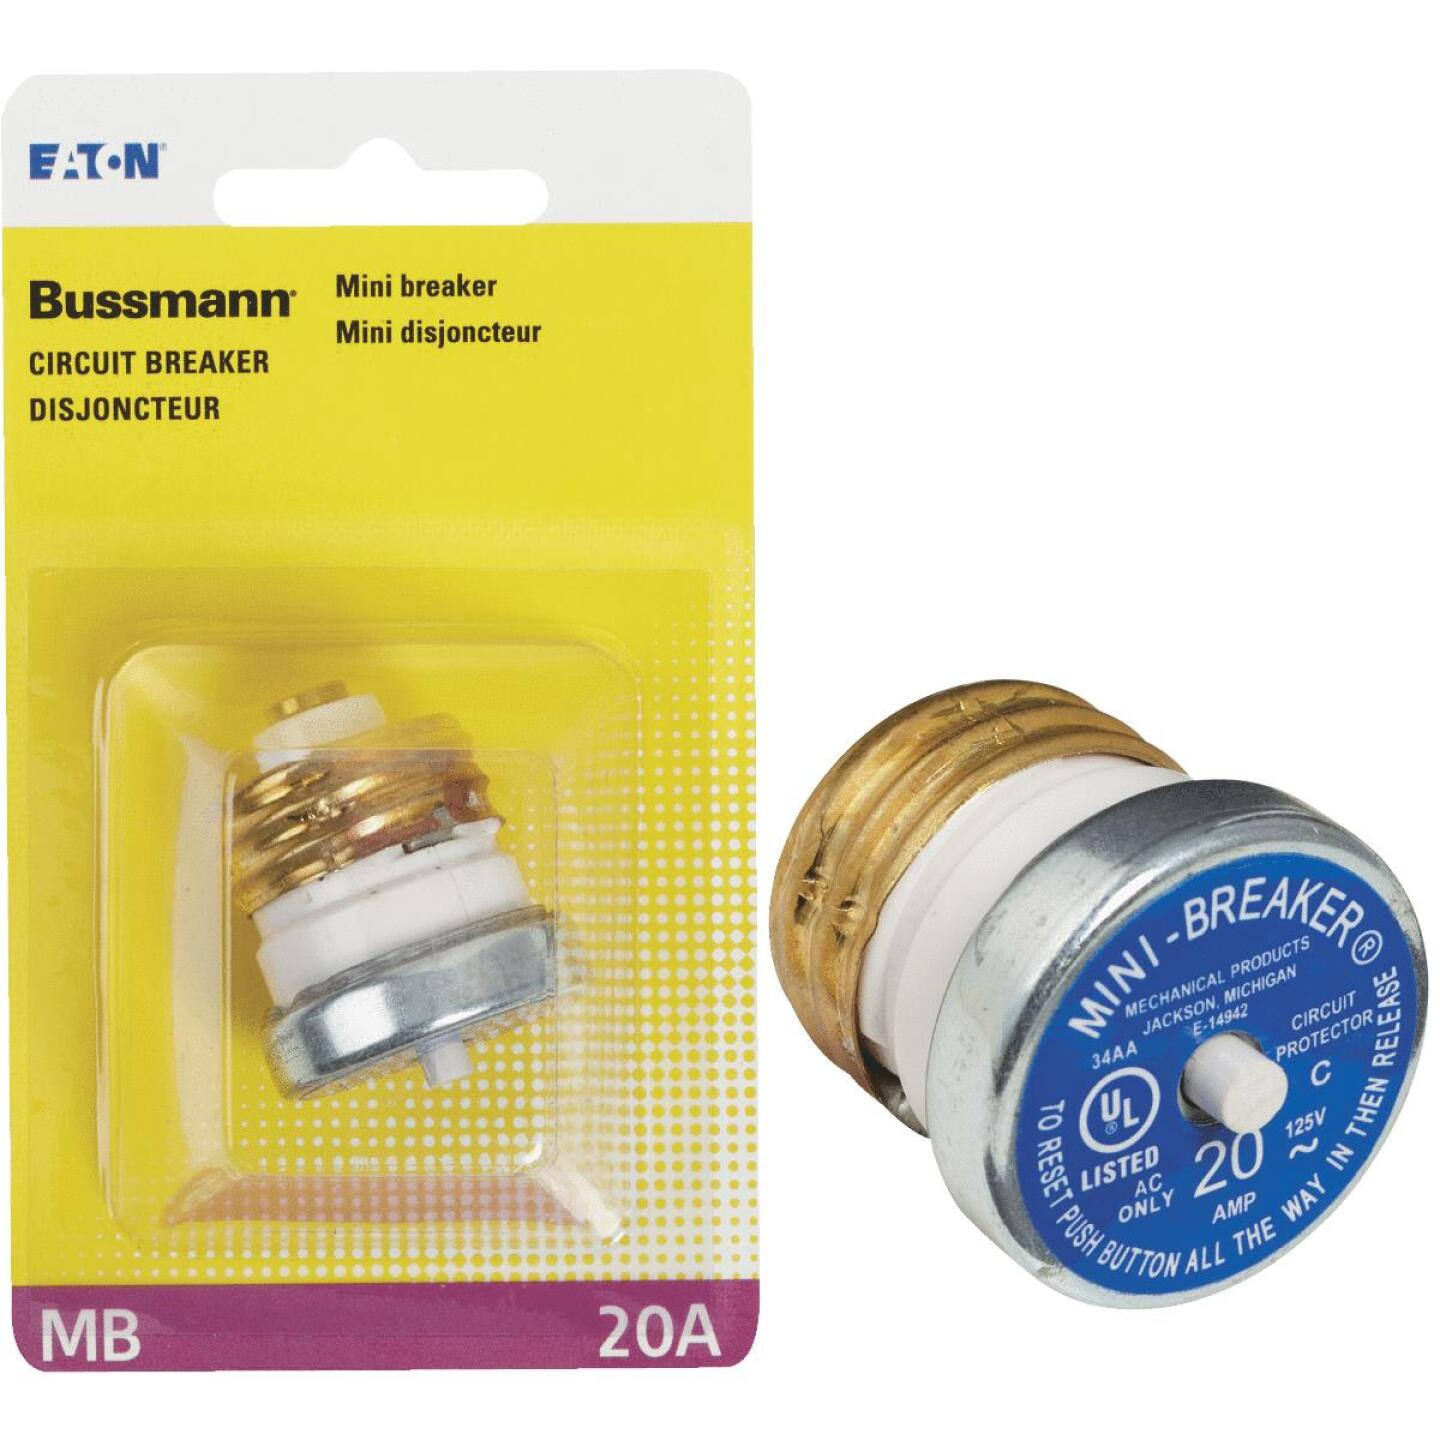 Bussmann 20A 125V Time-Delay Mini-Breaker Image 1